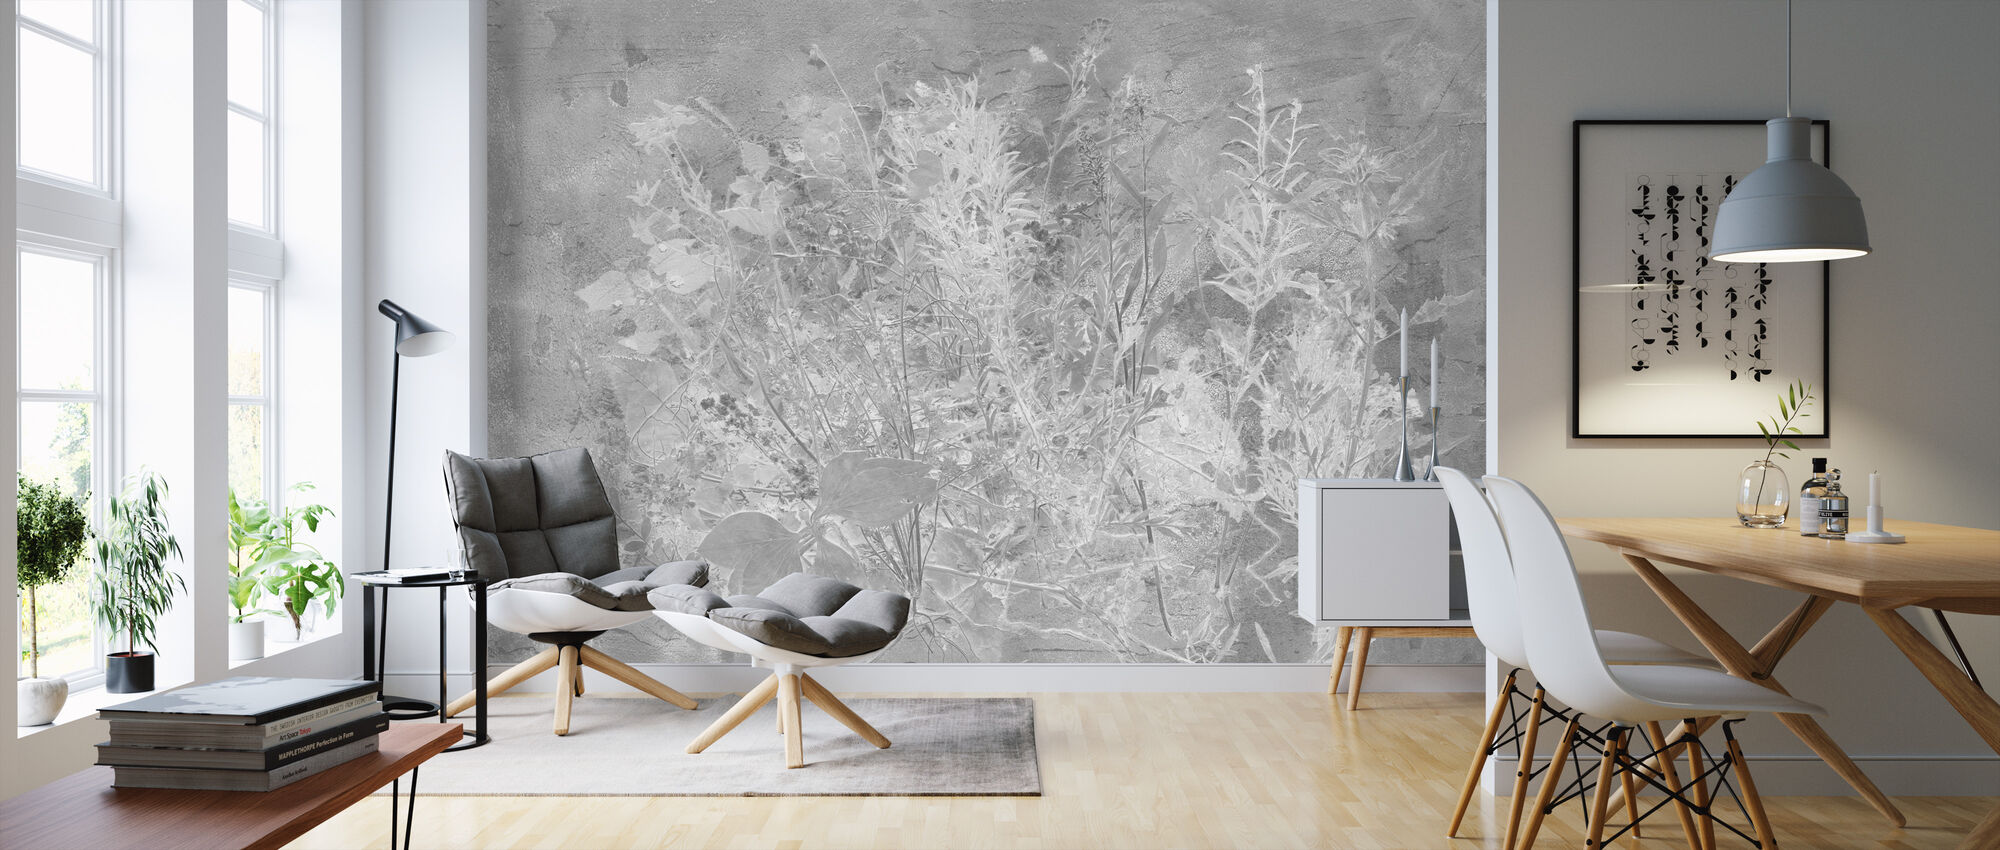 Flora Hysterica 1 - Wallpaper - Living Room